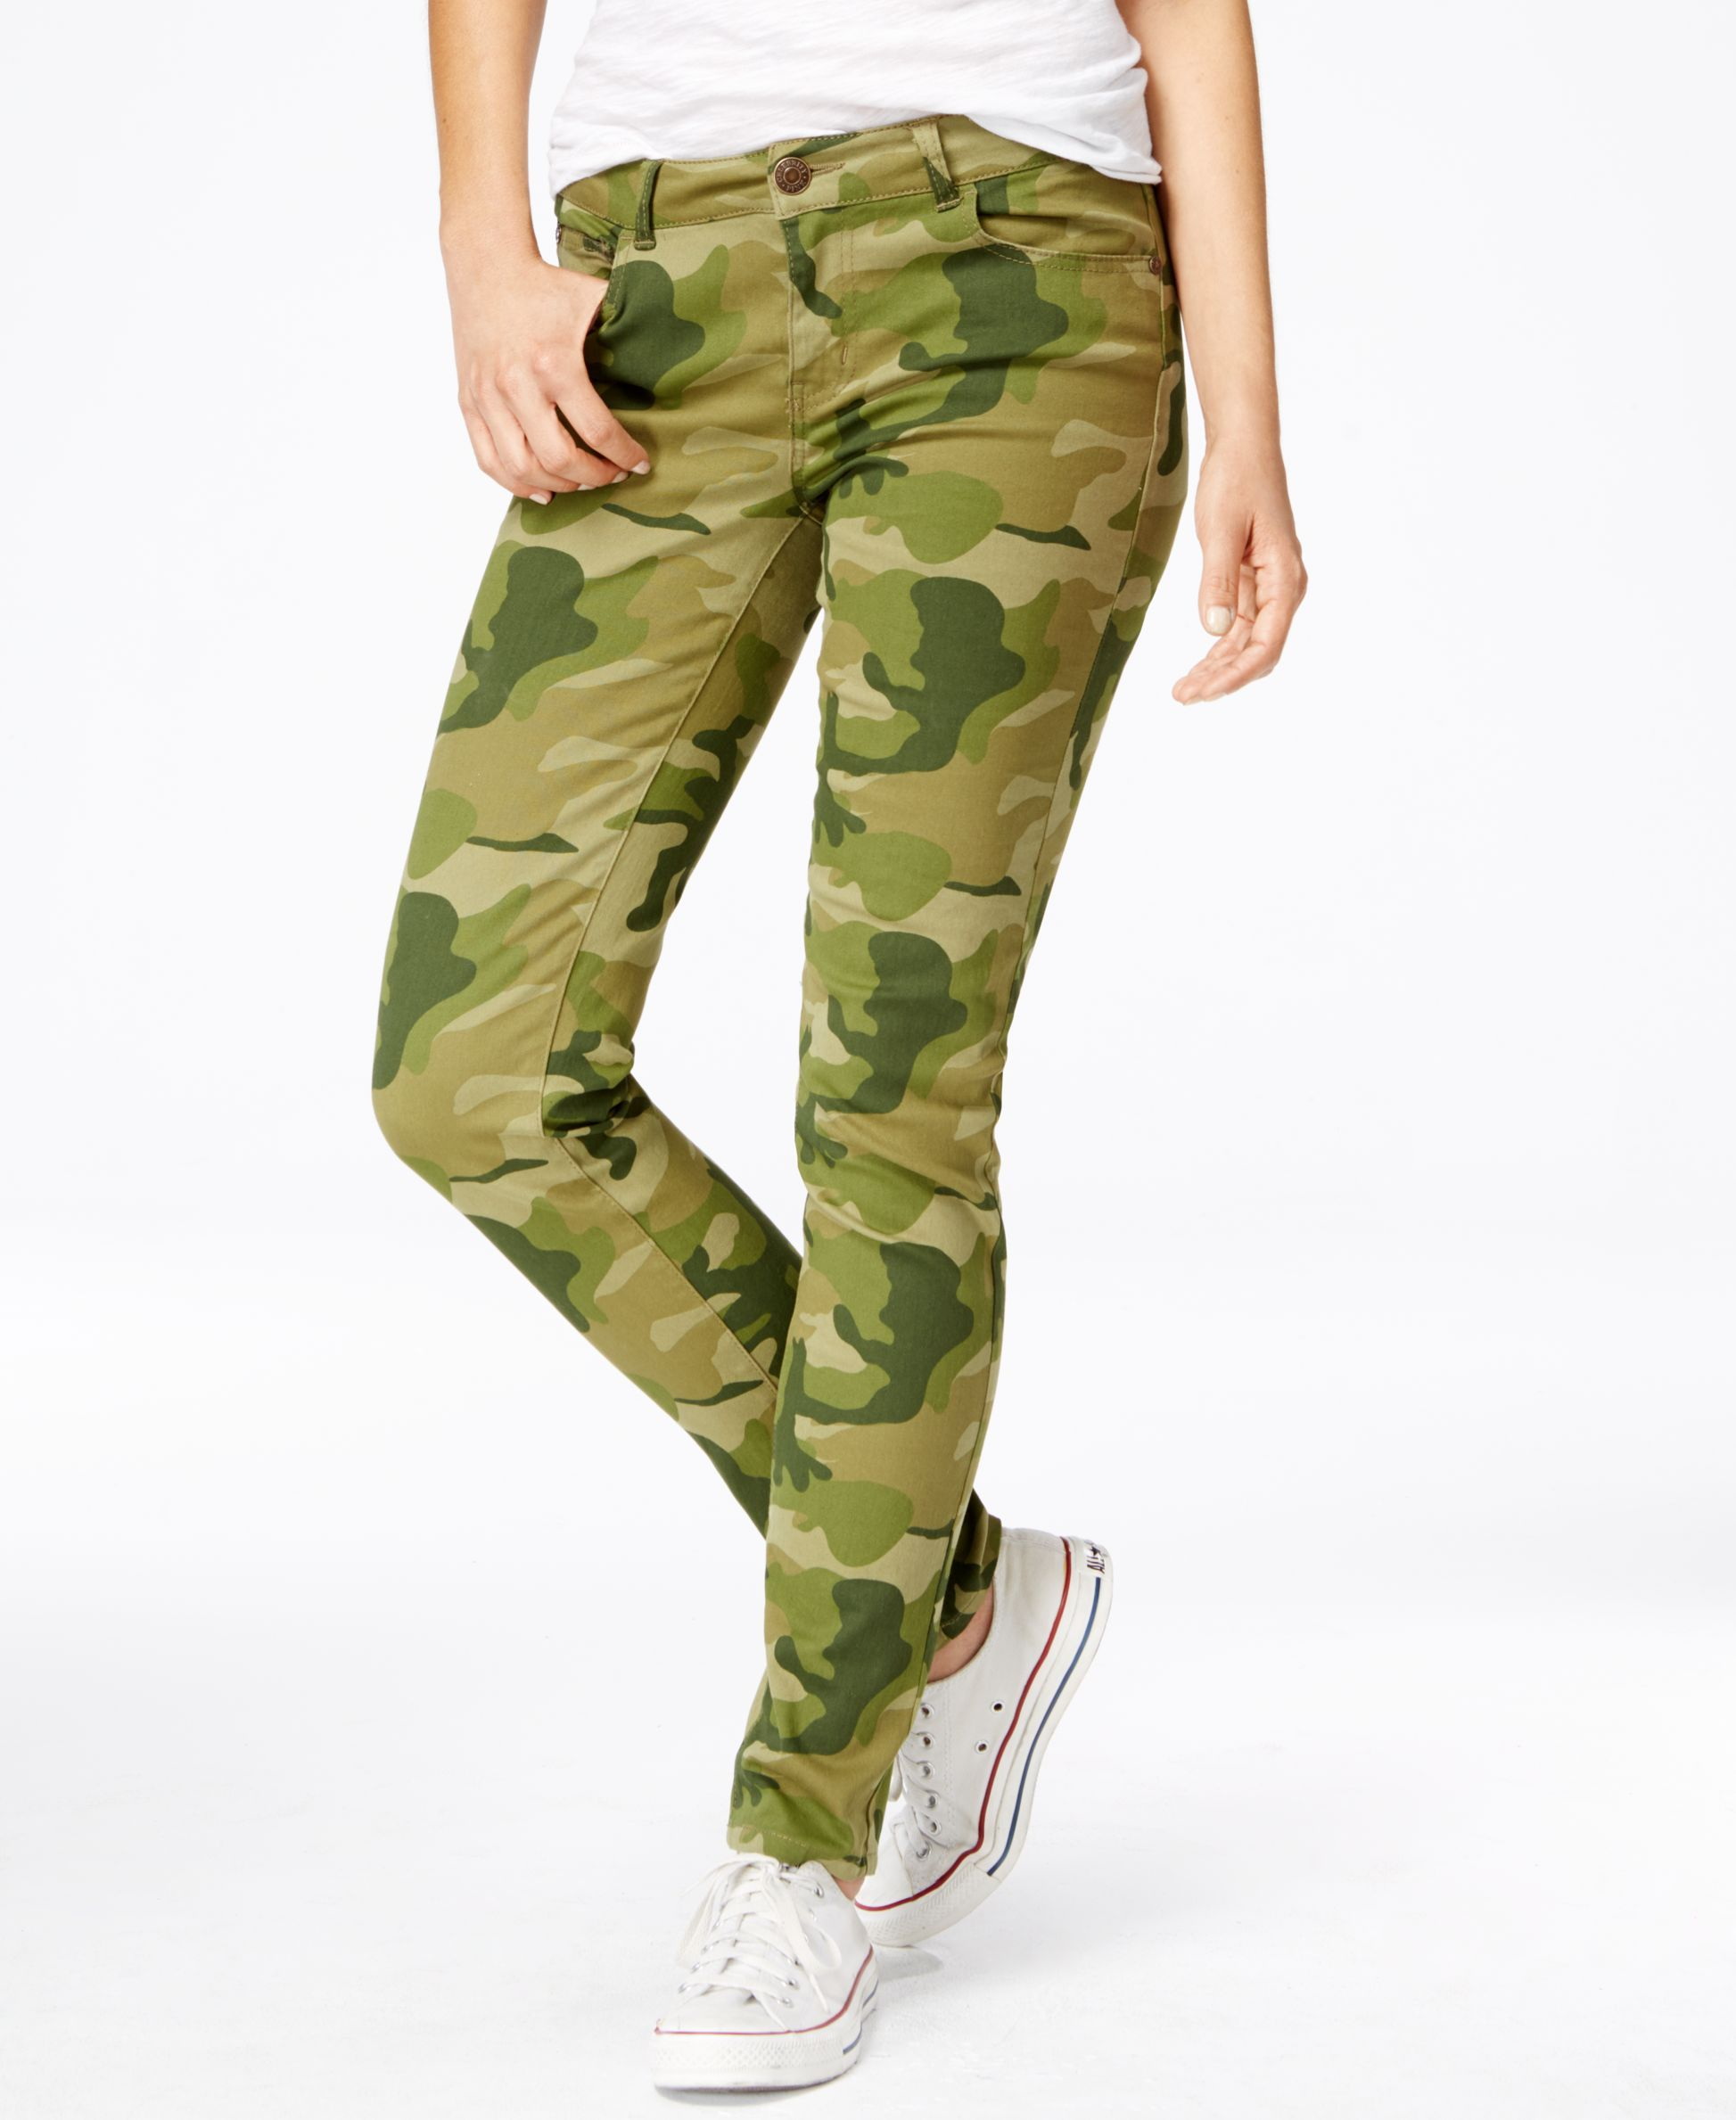 Skinny Camouflage jeans for juniors forecast dress in everyday in 2019